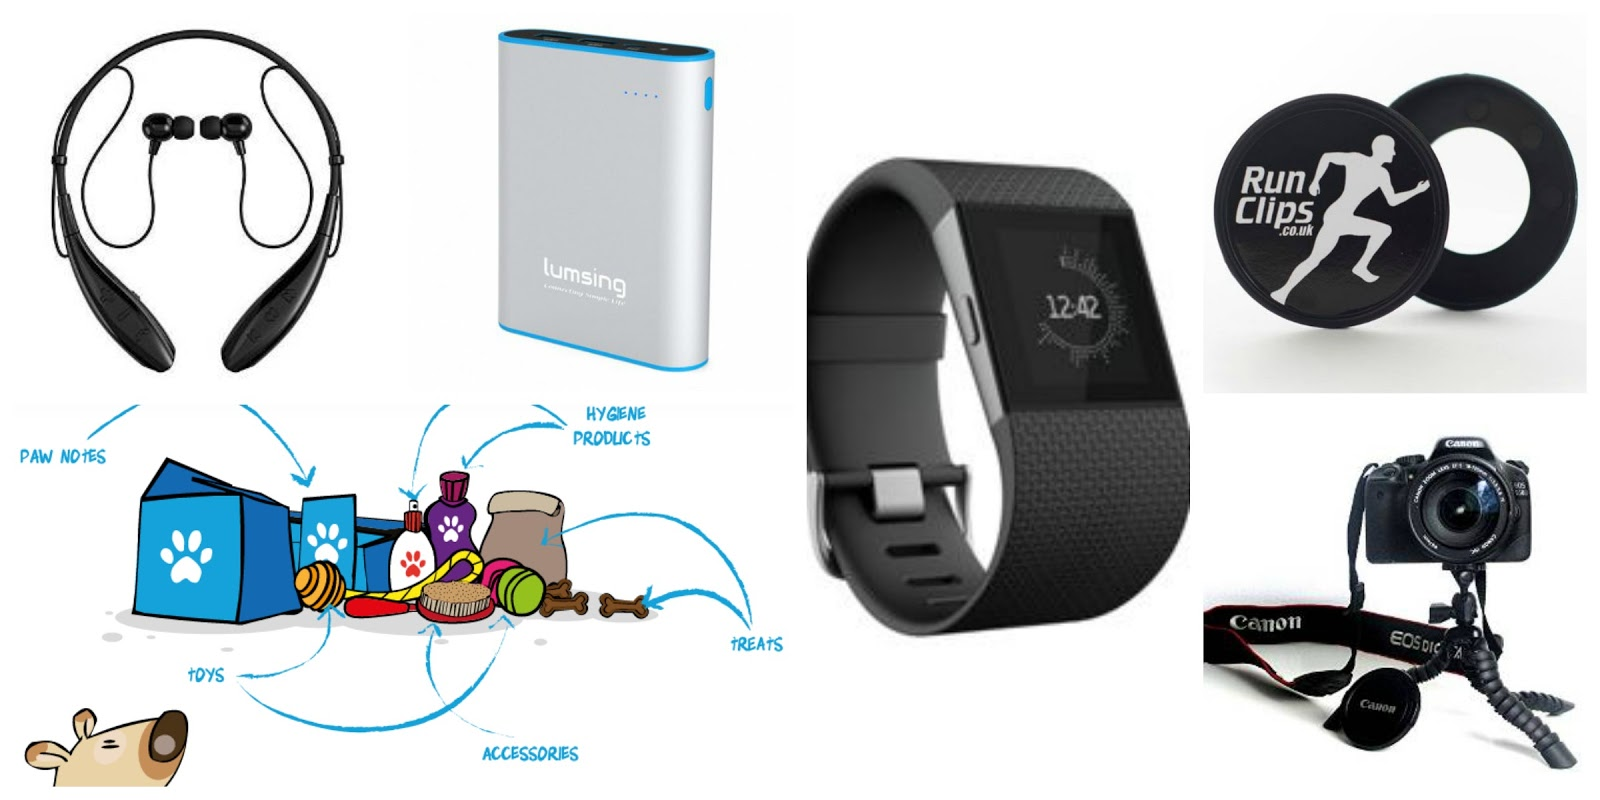 christmas, gift guide, unusual gifts, soundpeat, pawsome box, lumsing, powerbank, fitbit surge, runclips, tripod,